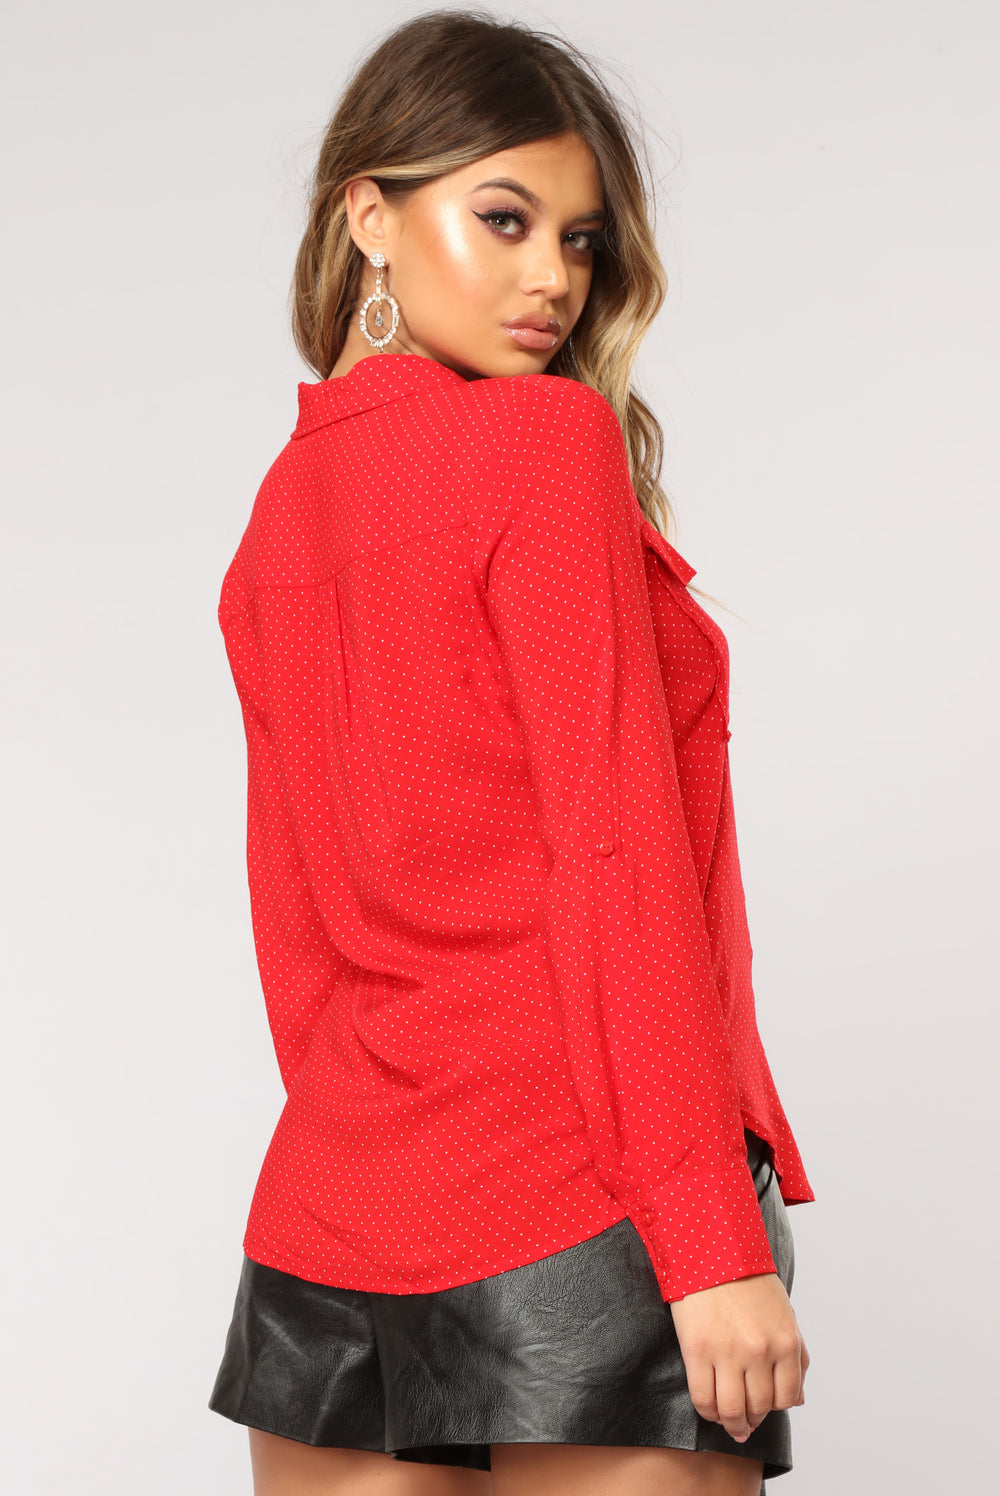 Lift Me Long Sleeve Top - Red